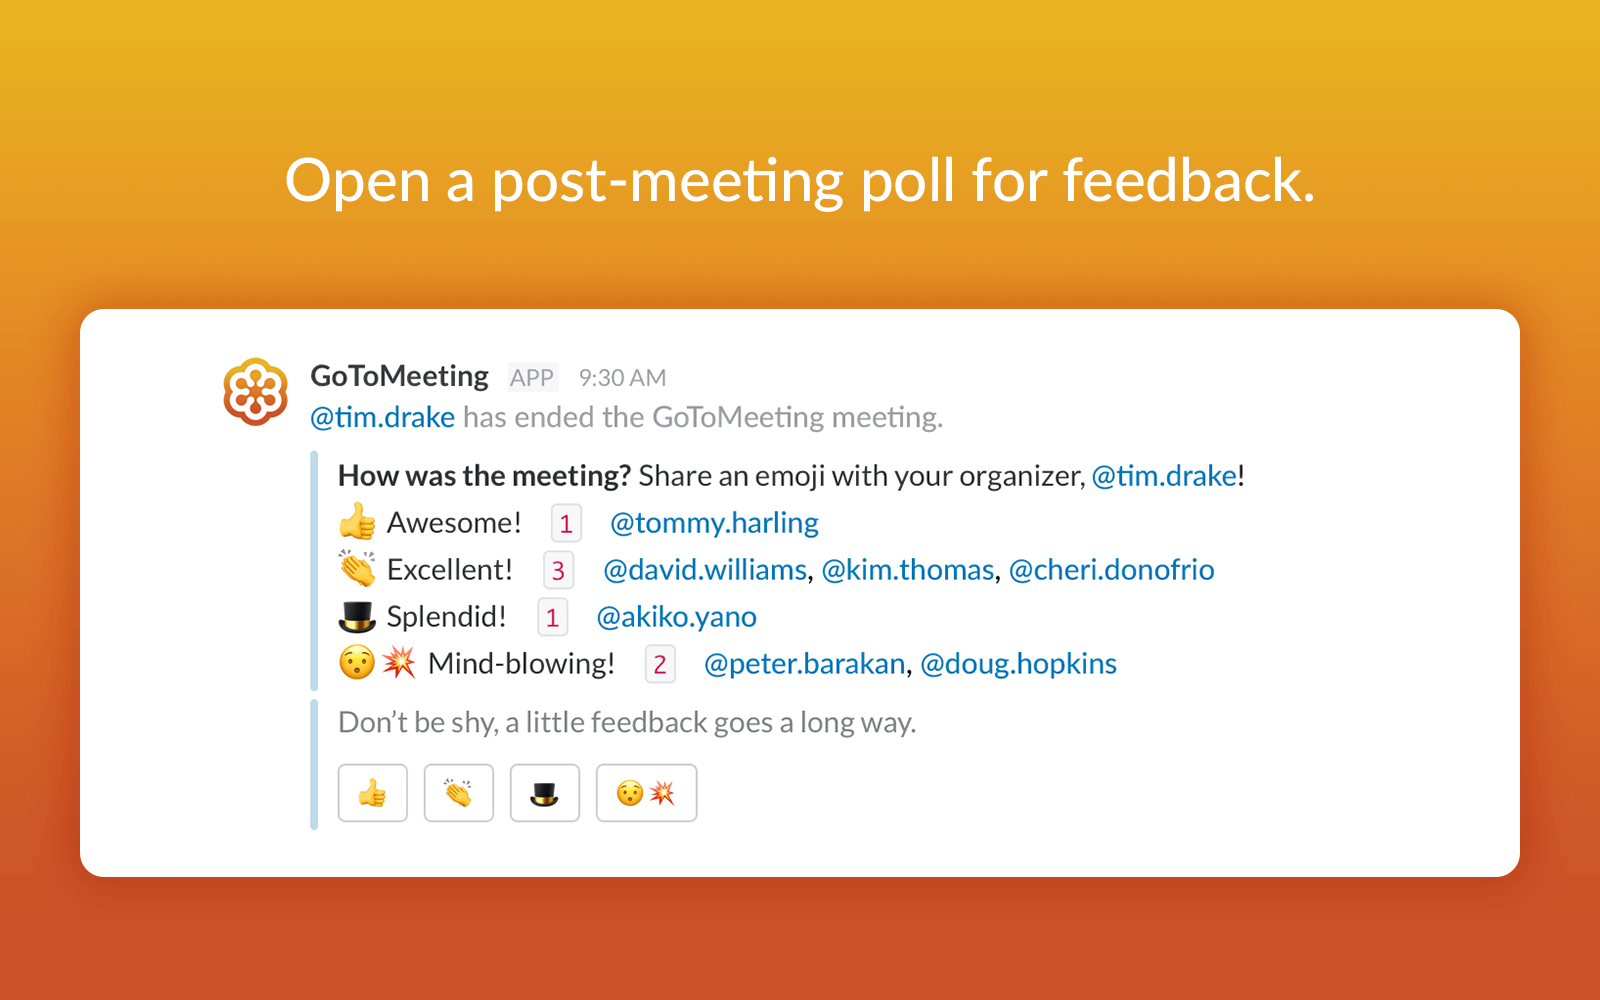 GoToMeeting Slack Poll